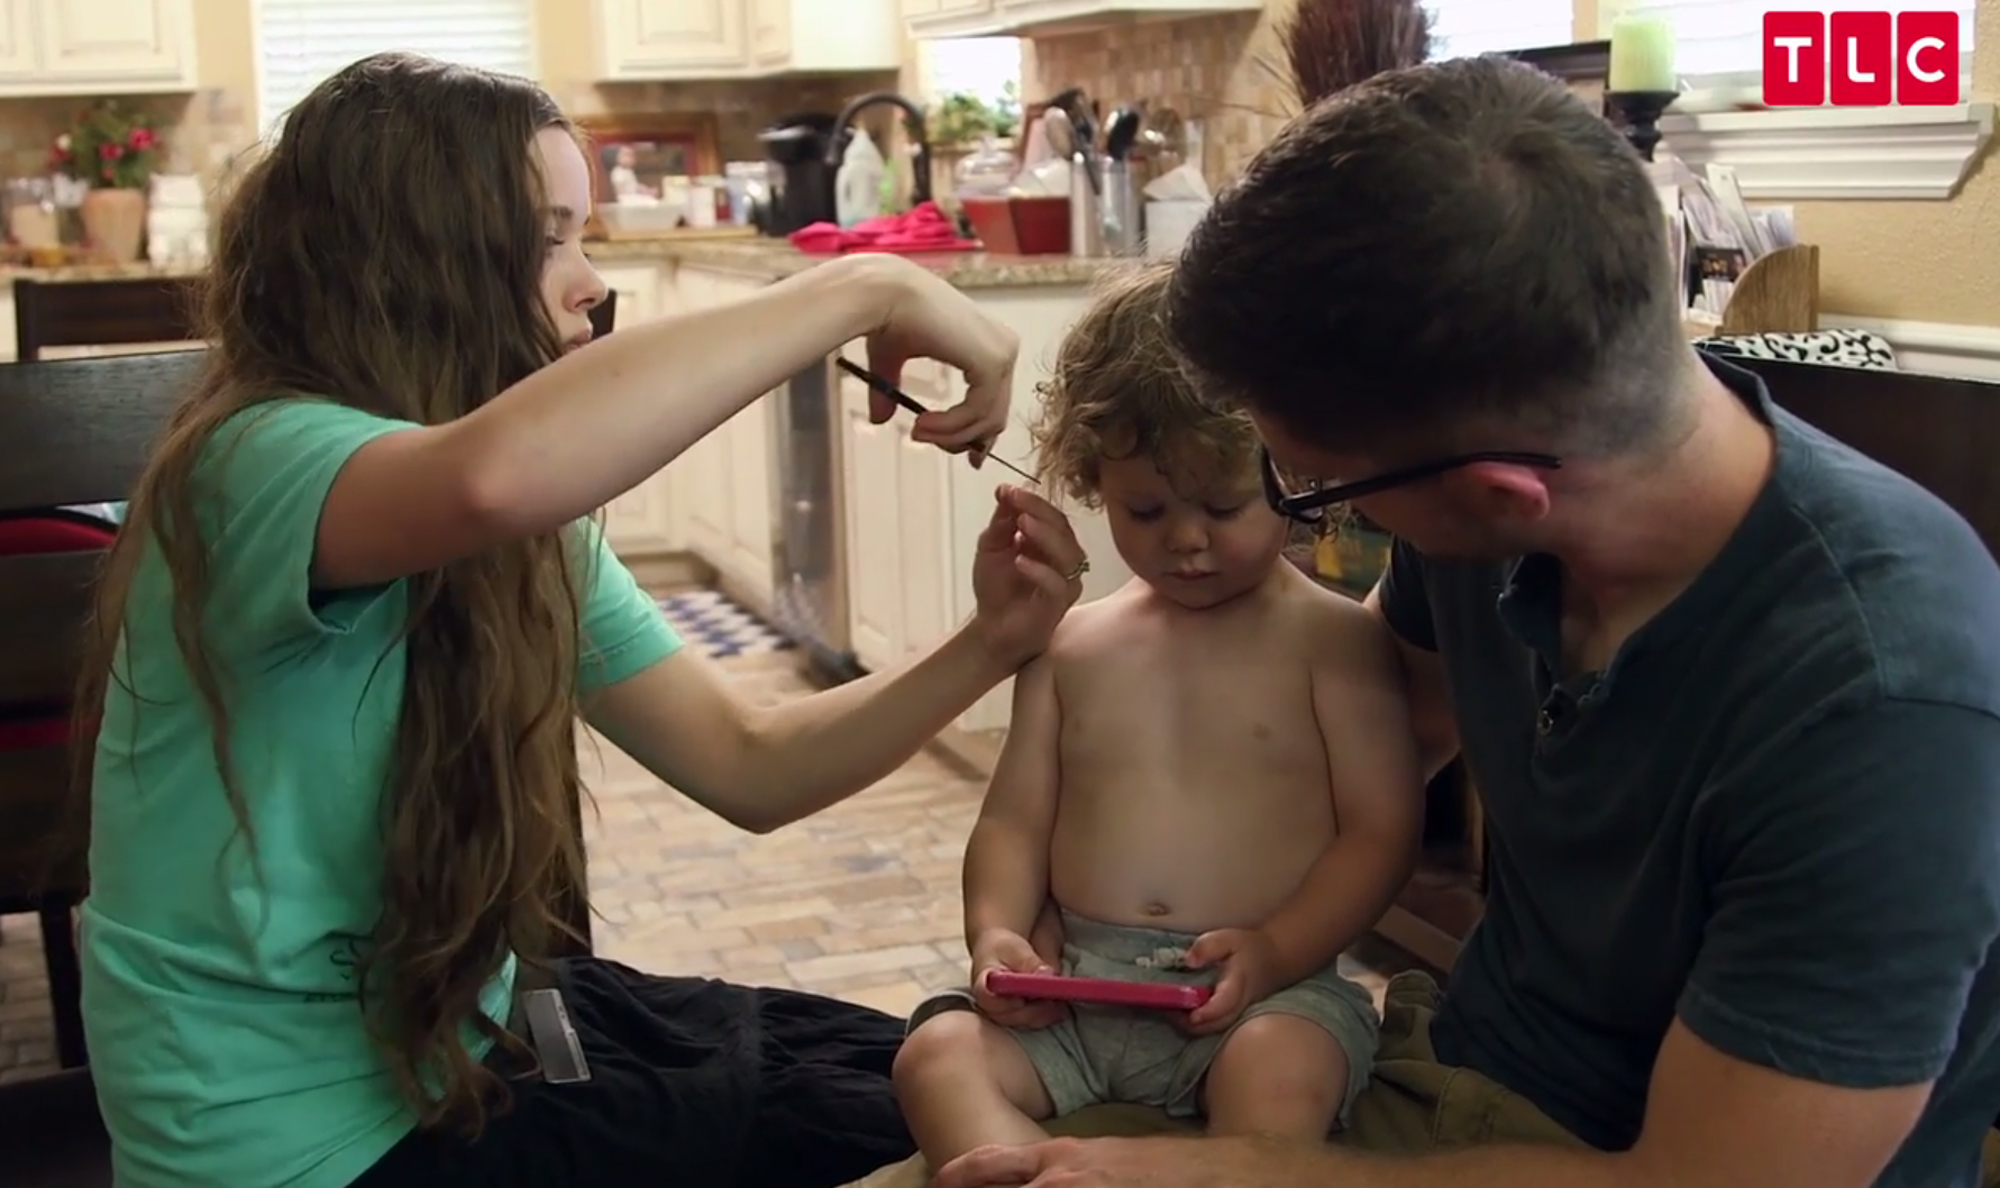 Jessa Duggar Gives son Spurgeon a haircutCourtesy TLC